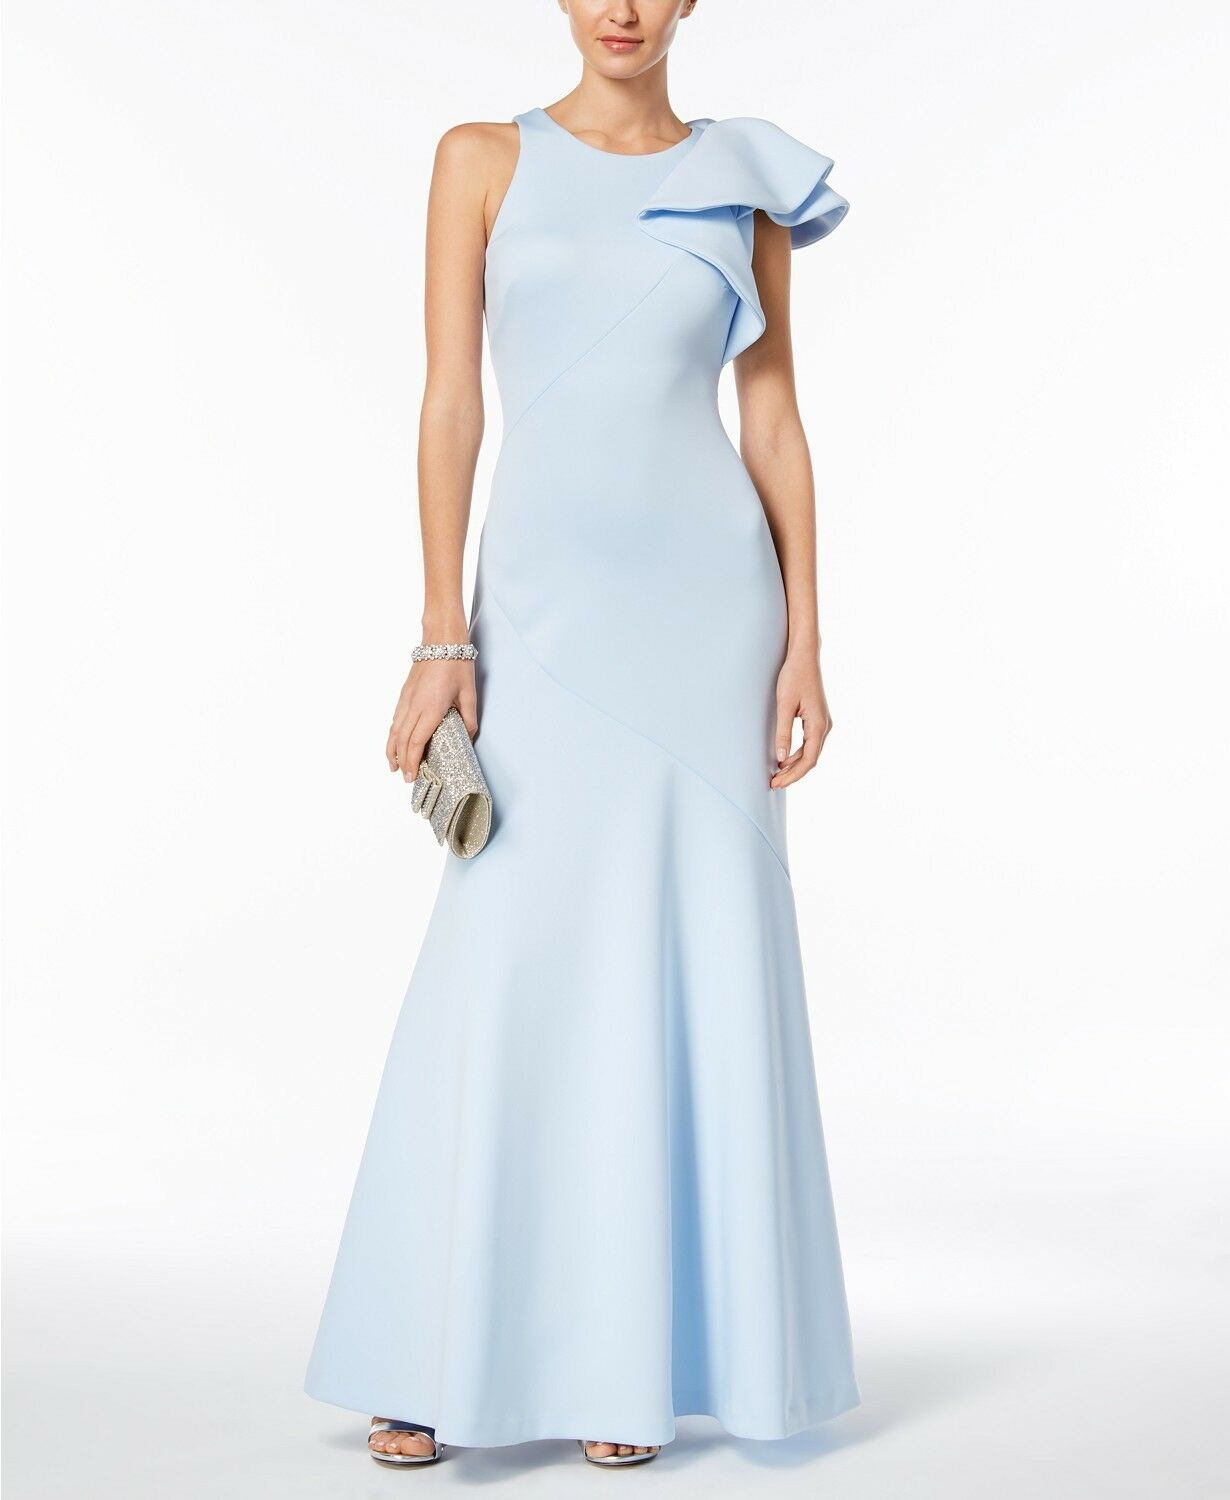 BETSY & ADAM damen Blau Ruffled Scuba One-Shoulder GOWN LONG DRESS Größe 4